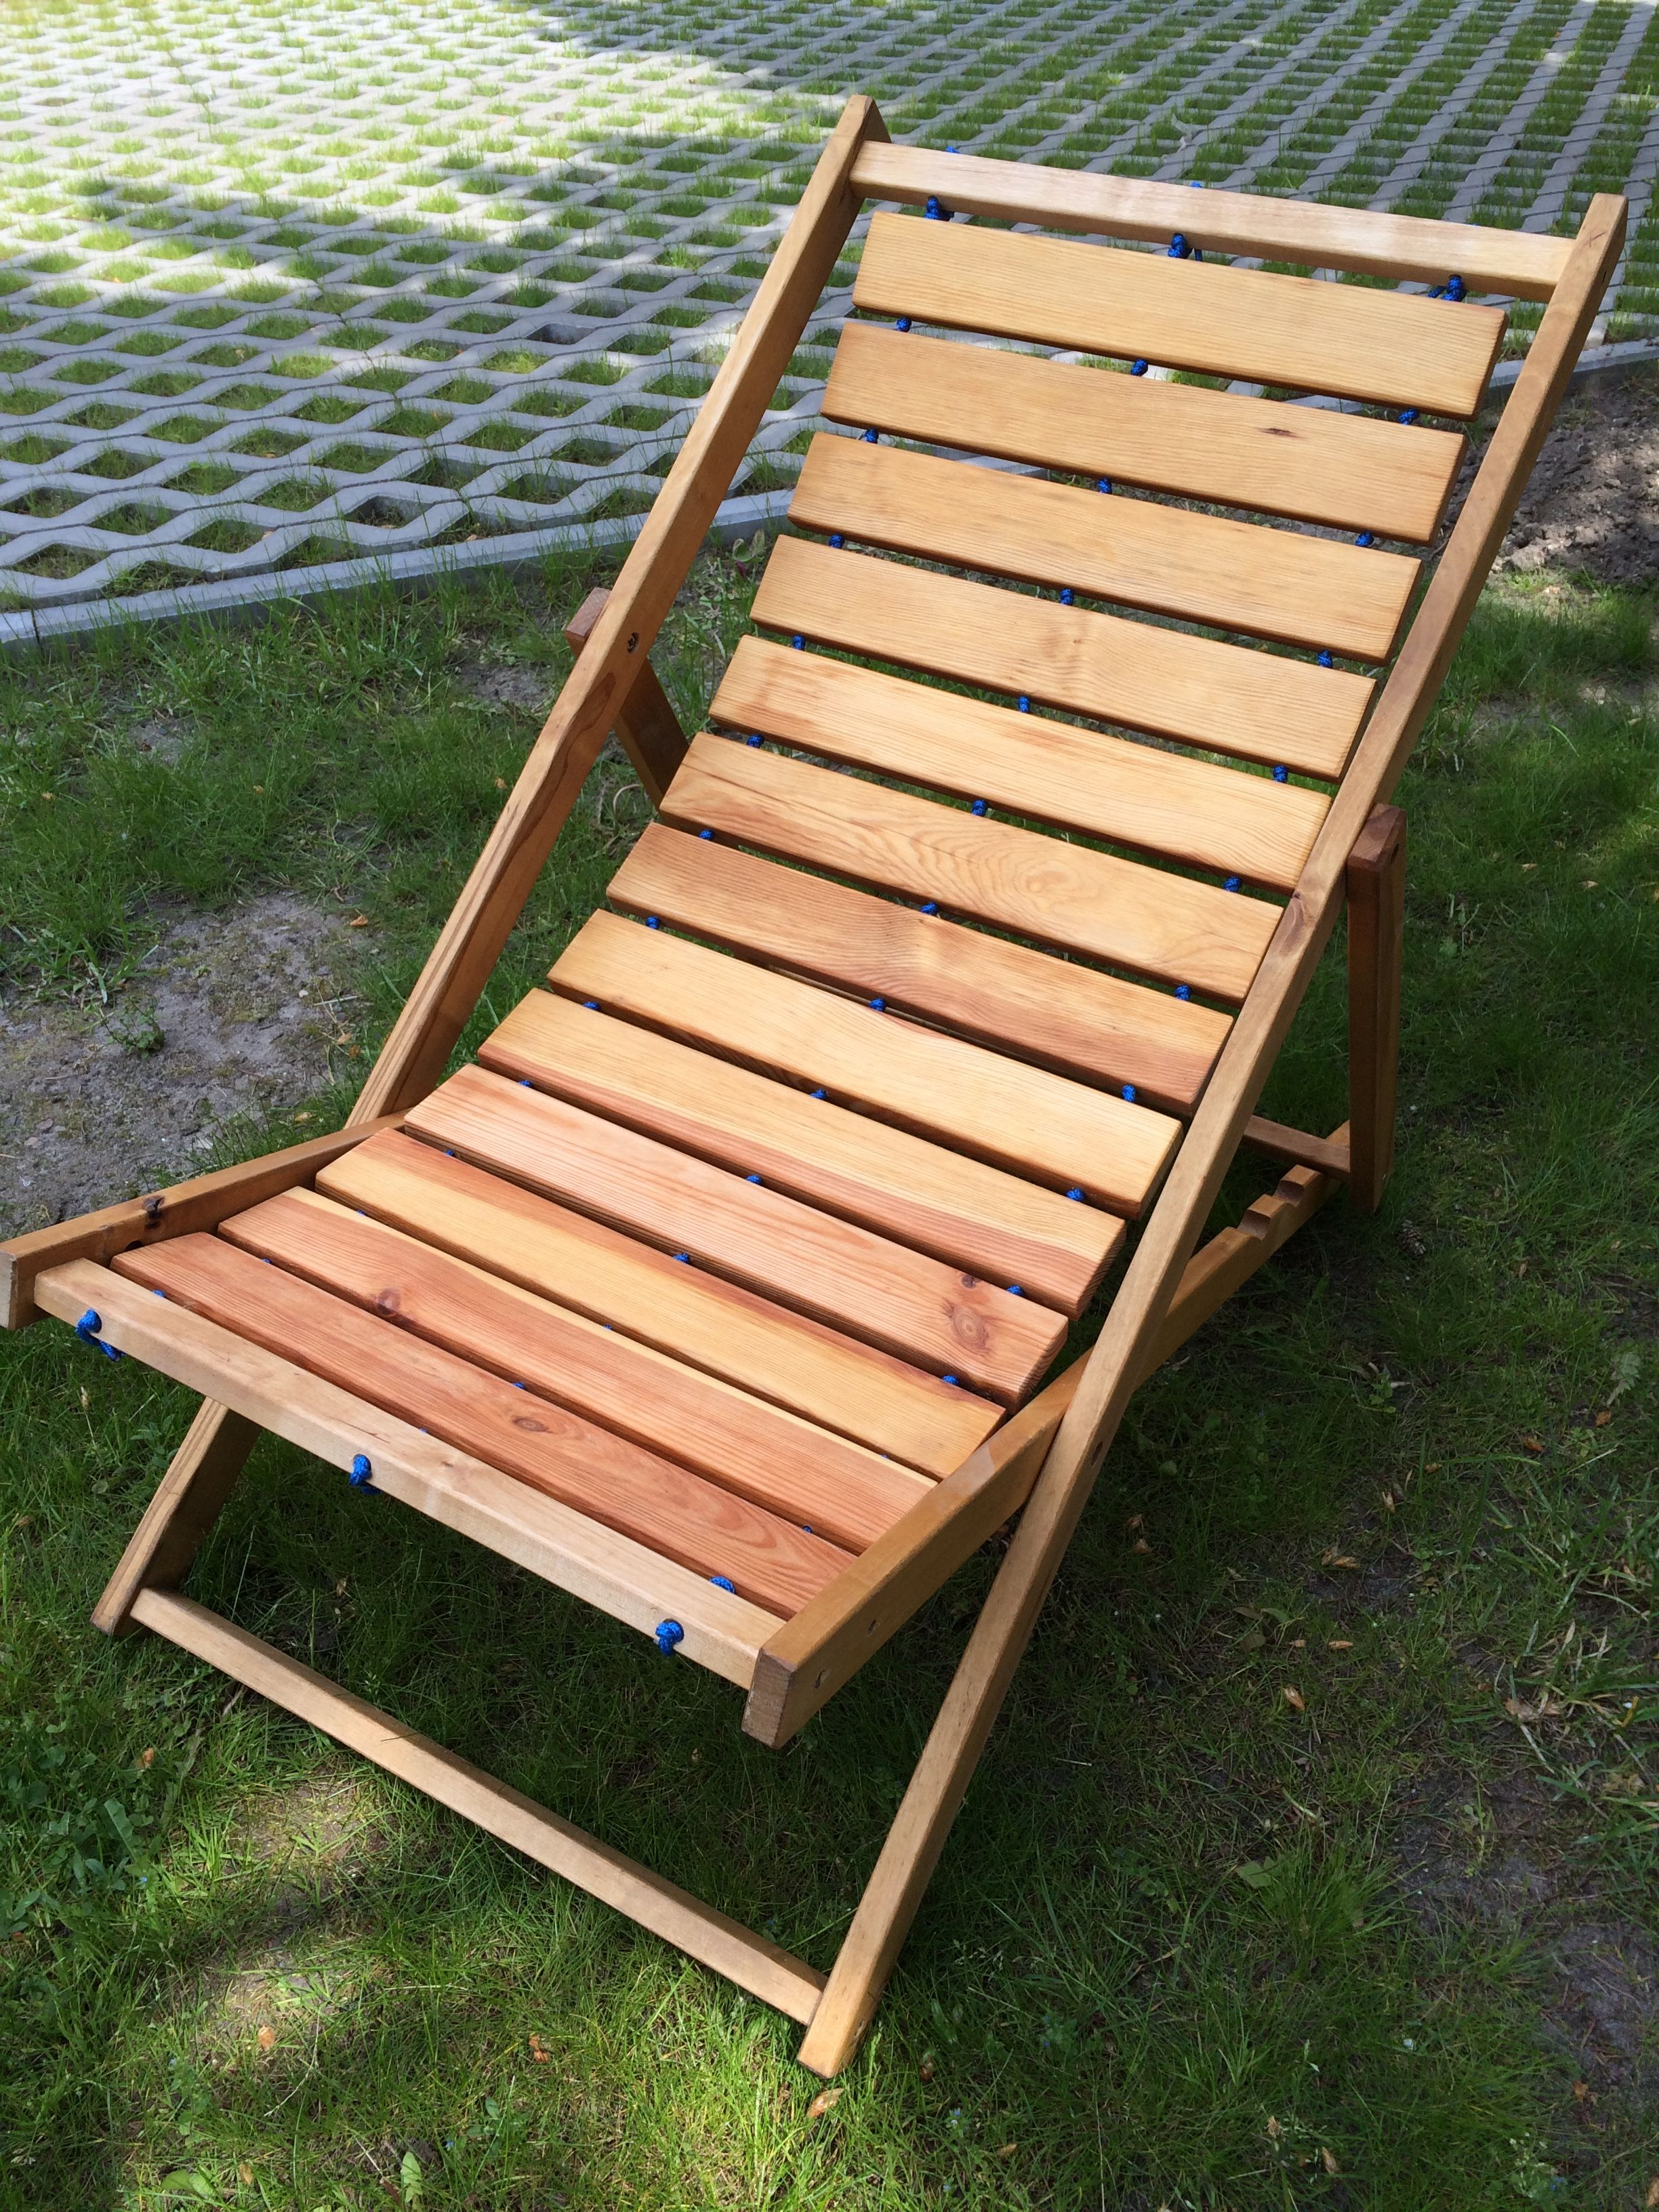 DIY scrapwood sunbed deck chair DIY Pinterest